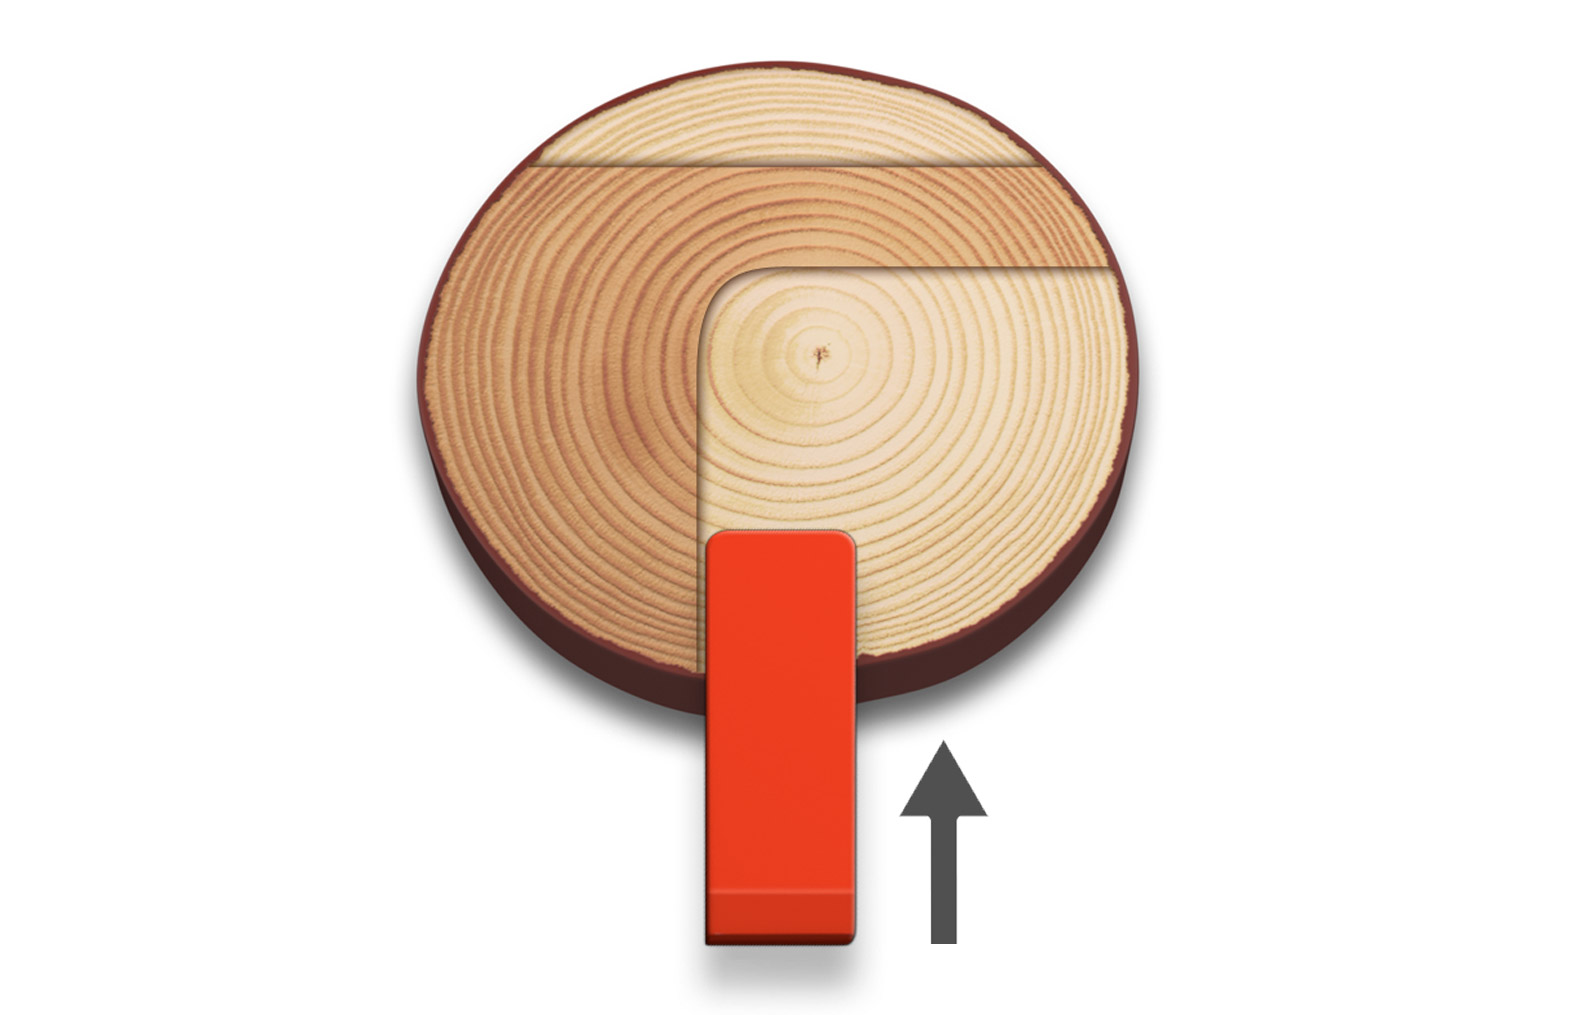 Illustration showing how a wedge is used to secure the tree